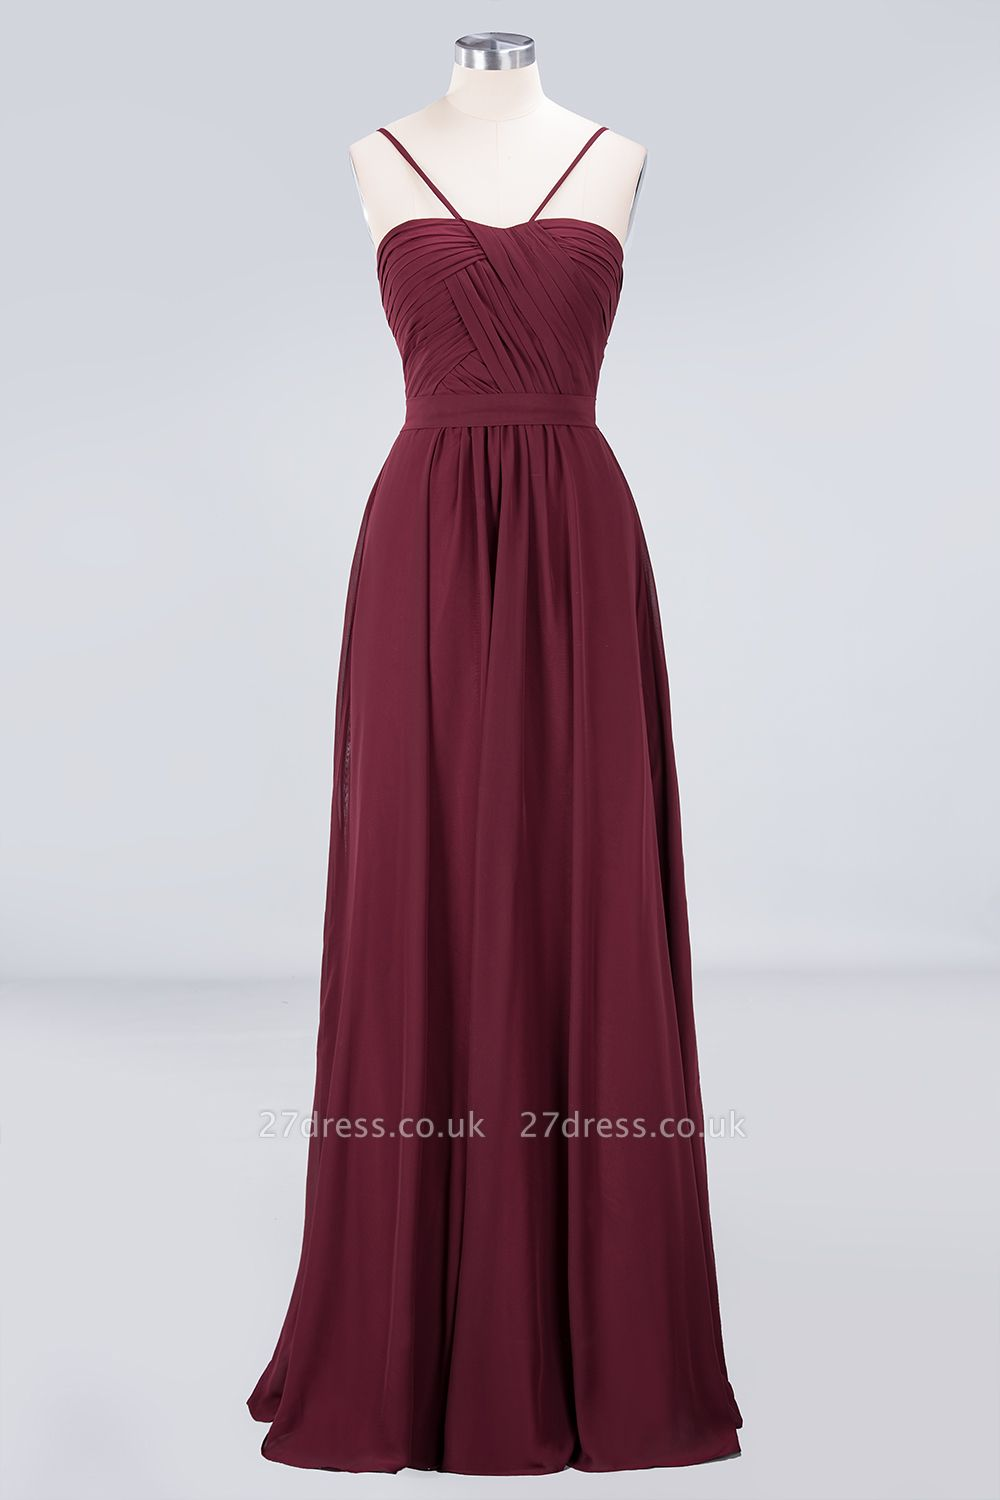 Sexy A-line Flowy Sweetheart Spaghetti-Straps Backless Floor-Length Bridesmaid Dress UK UK with Ruffles